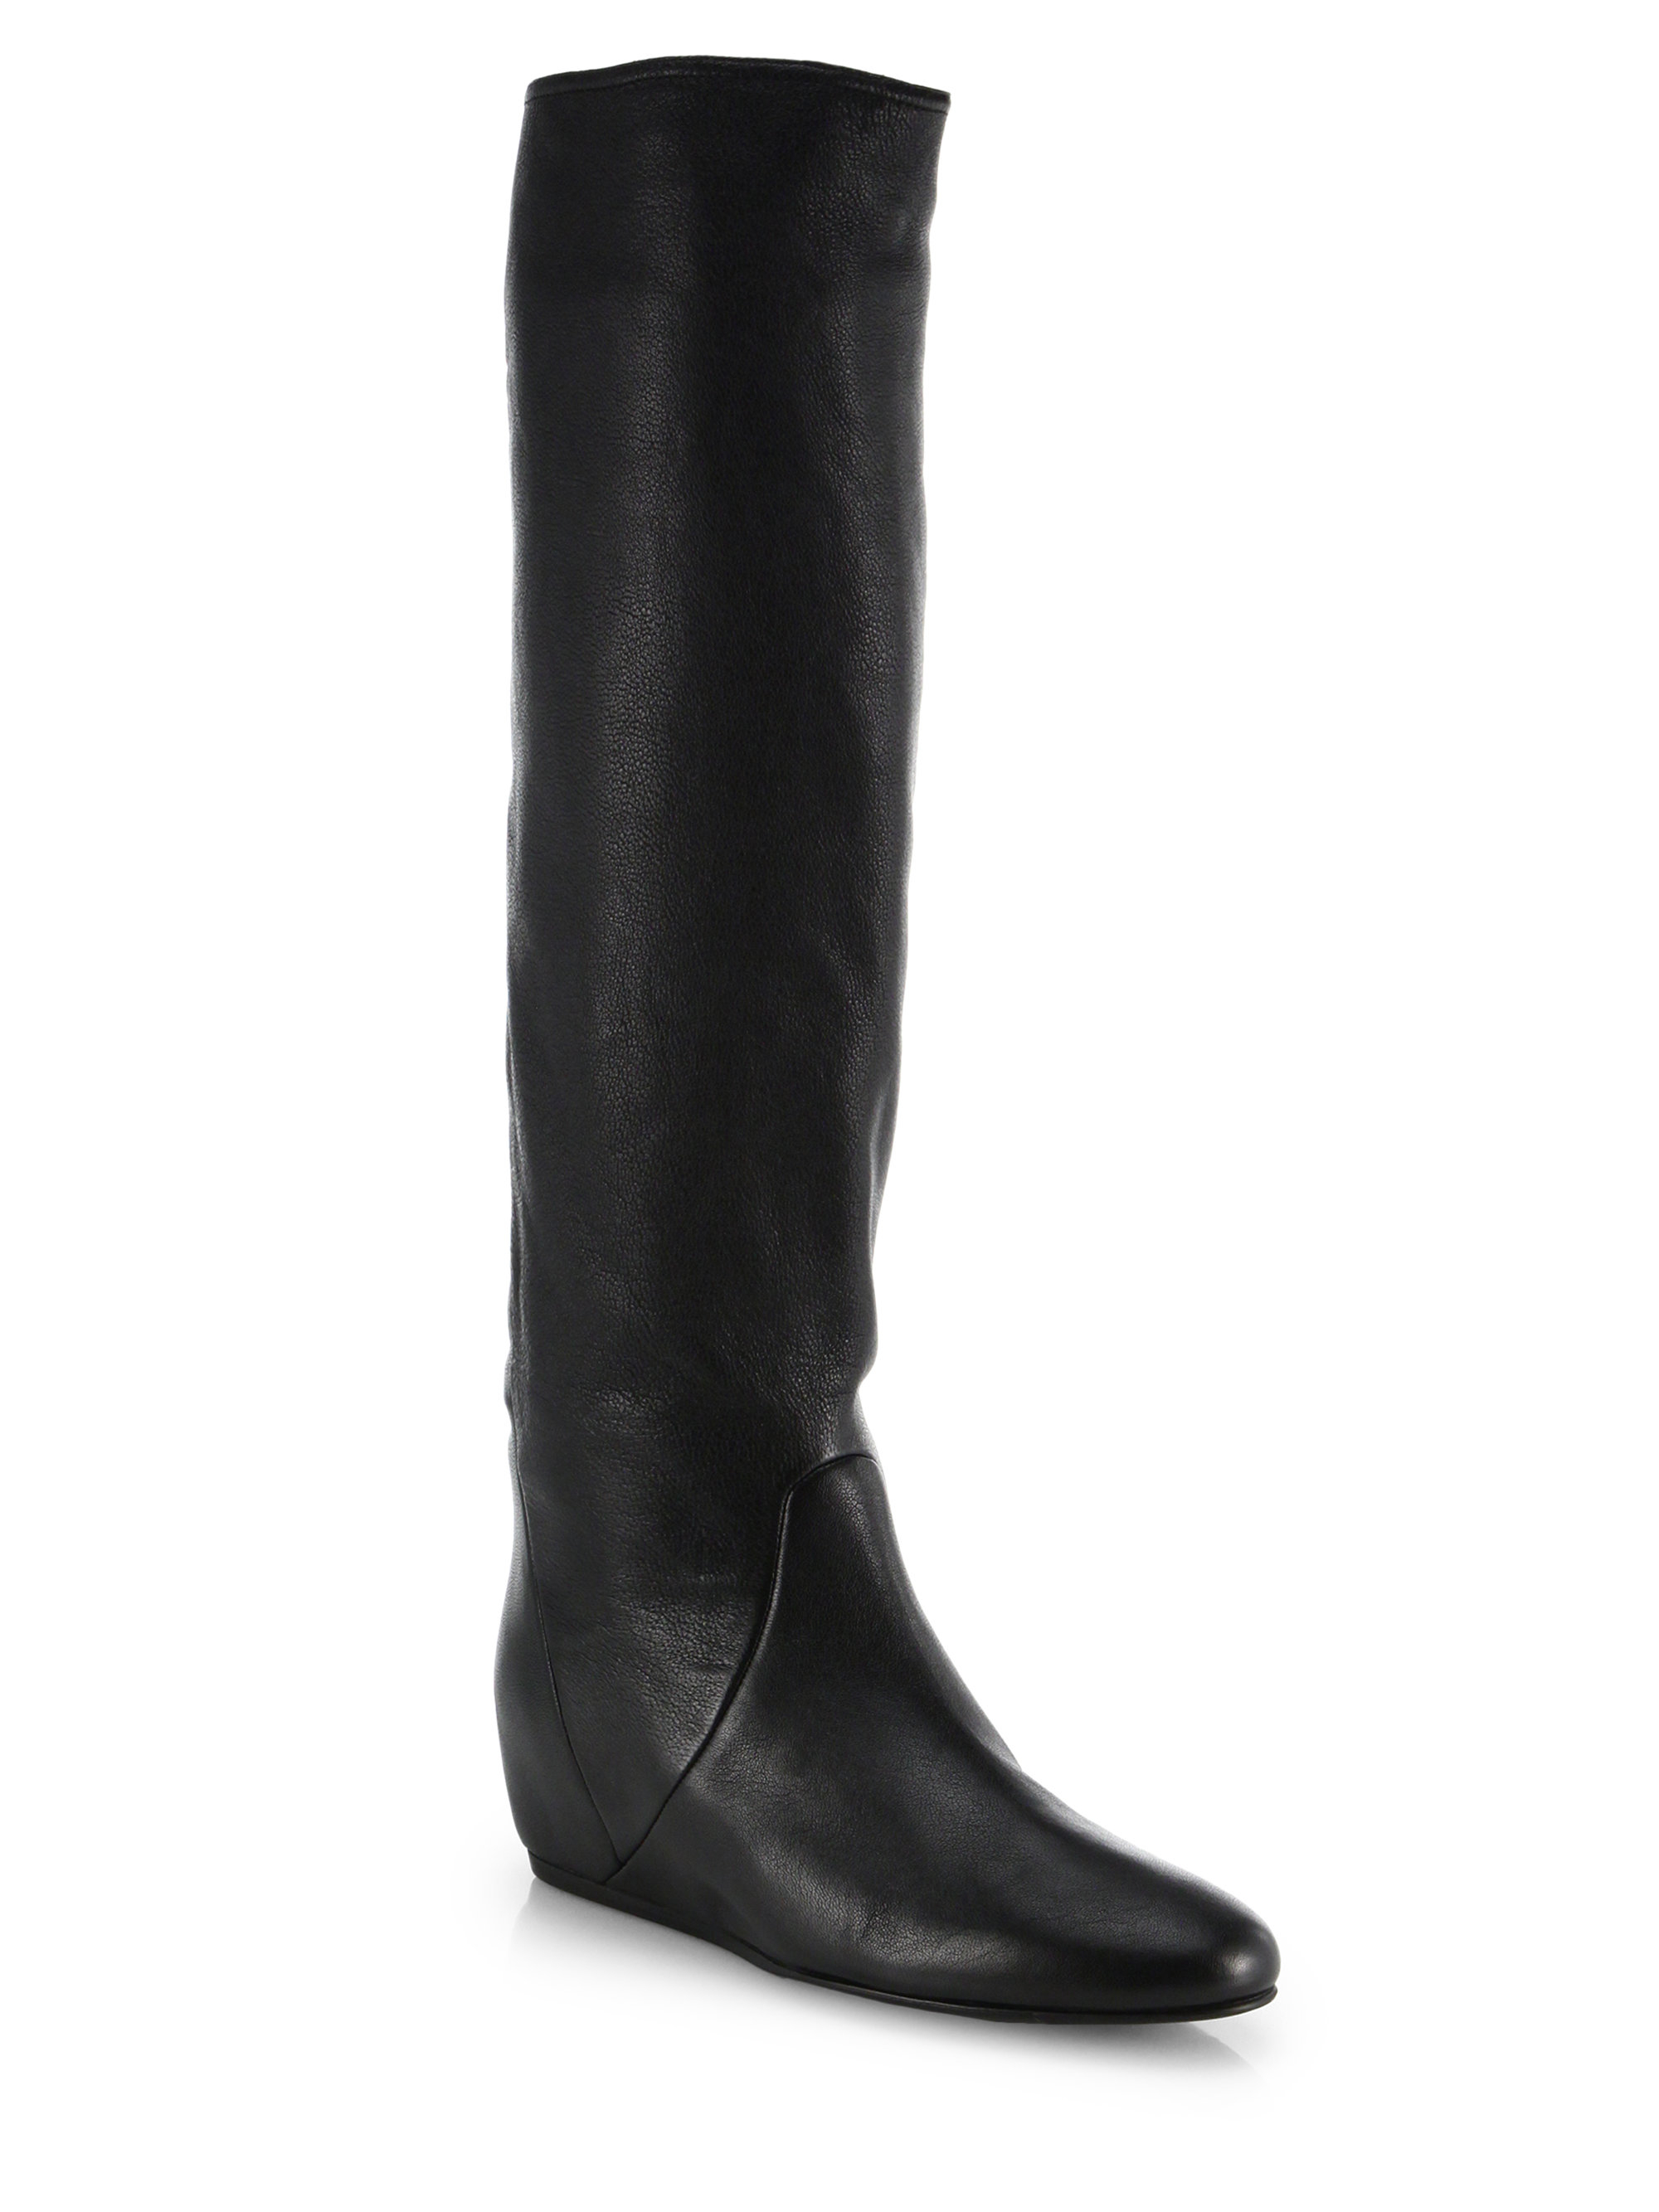 Lanvin Hidden-wedge Leather Knee-high Boots in Black | Lyst